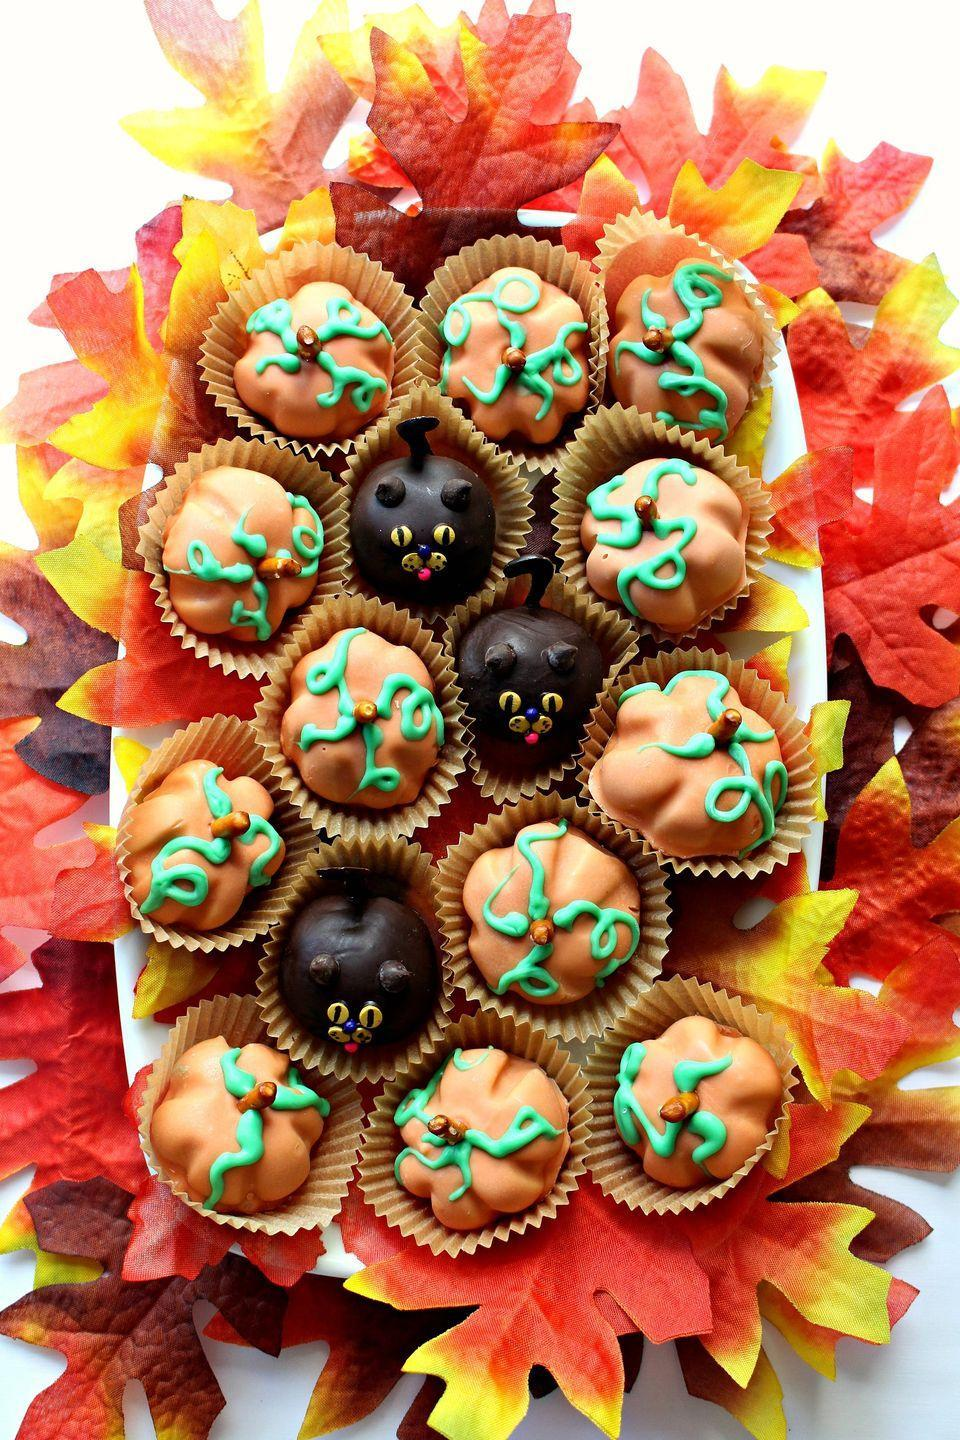 """<p>How adorable are these? Plus, no one can resist peanut butter and chocolate!</p><p><a class=""""link rapid-noclick-resp"""" href=""""https://themondaybox.com/peanut-butter-ball-pumpkins-cats/"""" rel=""""nofollow noopener"""" target=""""_blank"""" data-ylk=""""slk:GET THE RECIPE"""">GET THE RECIPE</a></p>"""